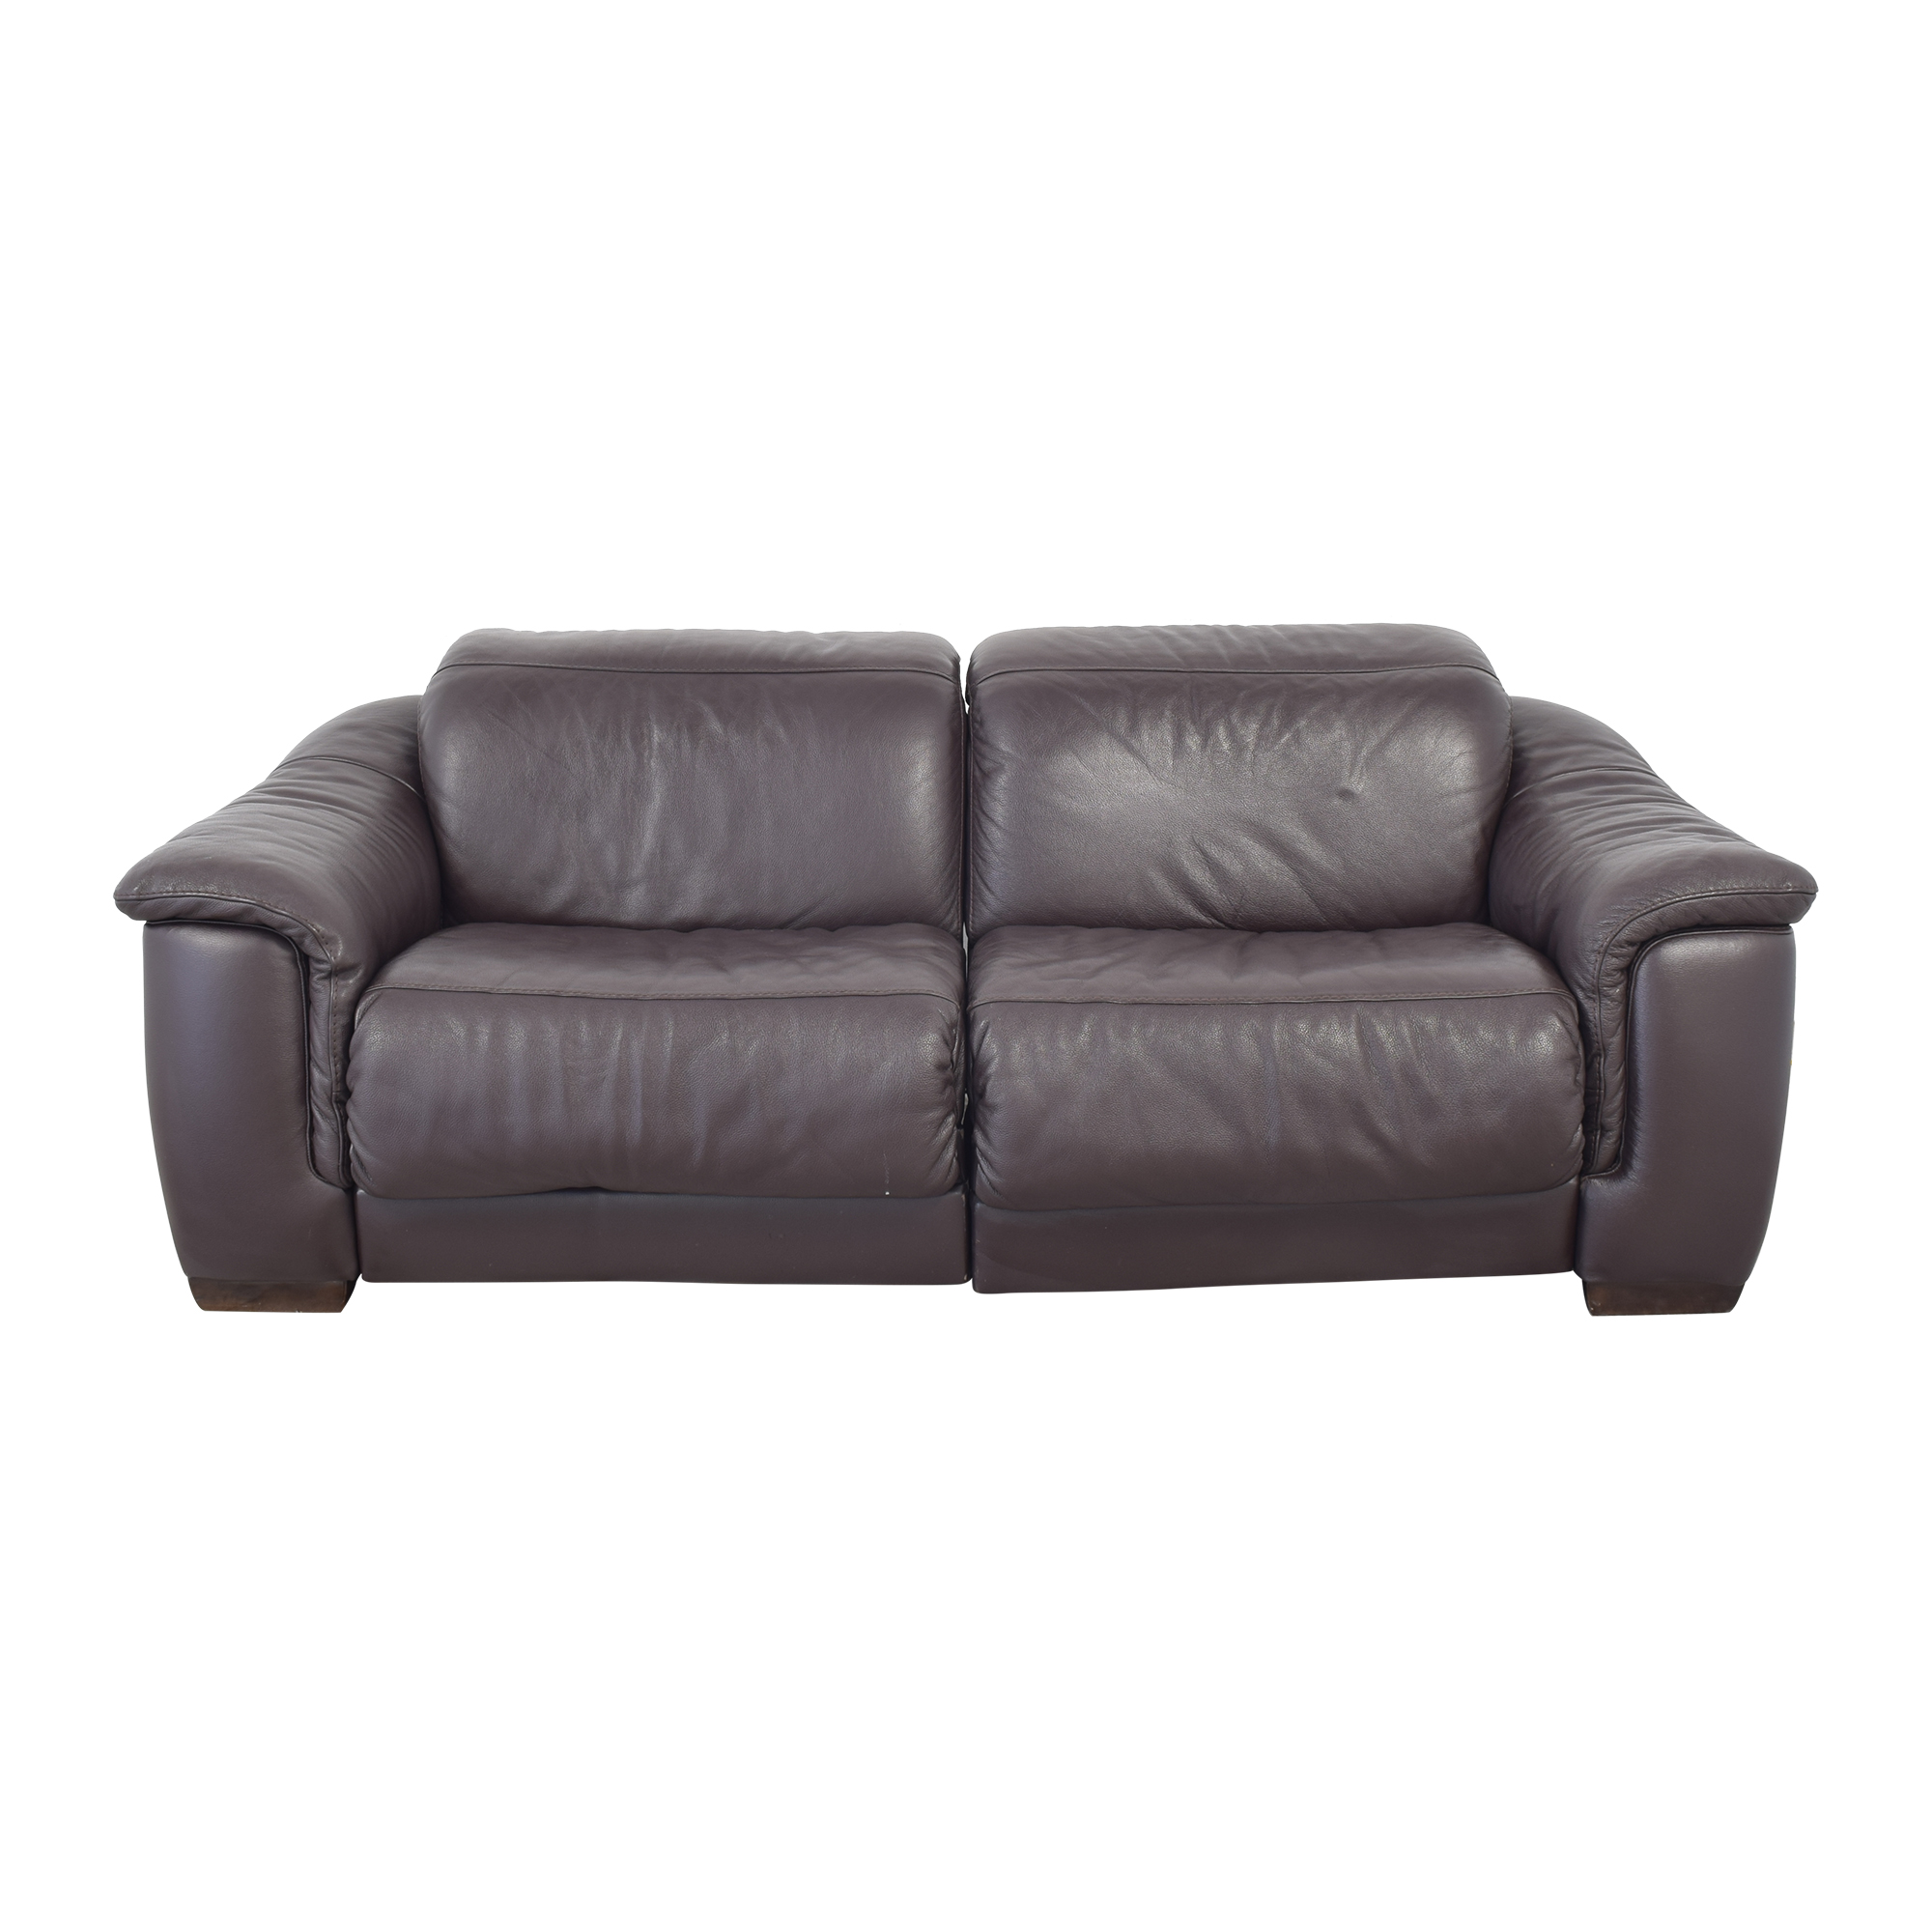 shop Macy's Natuzzi Two Cushion Reclining Sofa Macy's Sofas